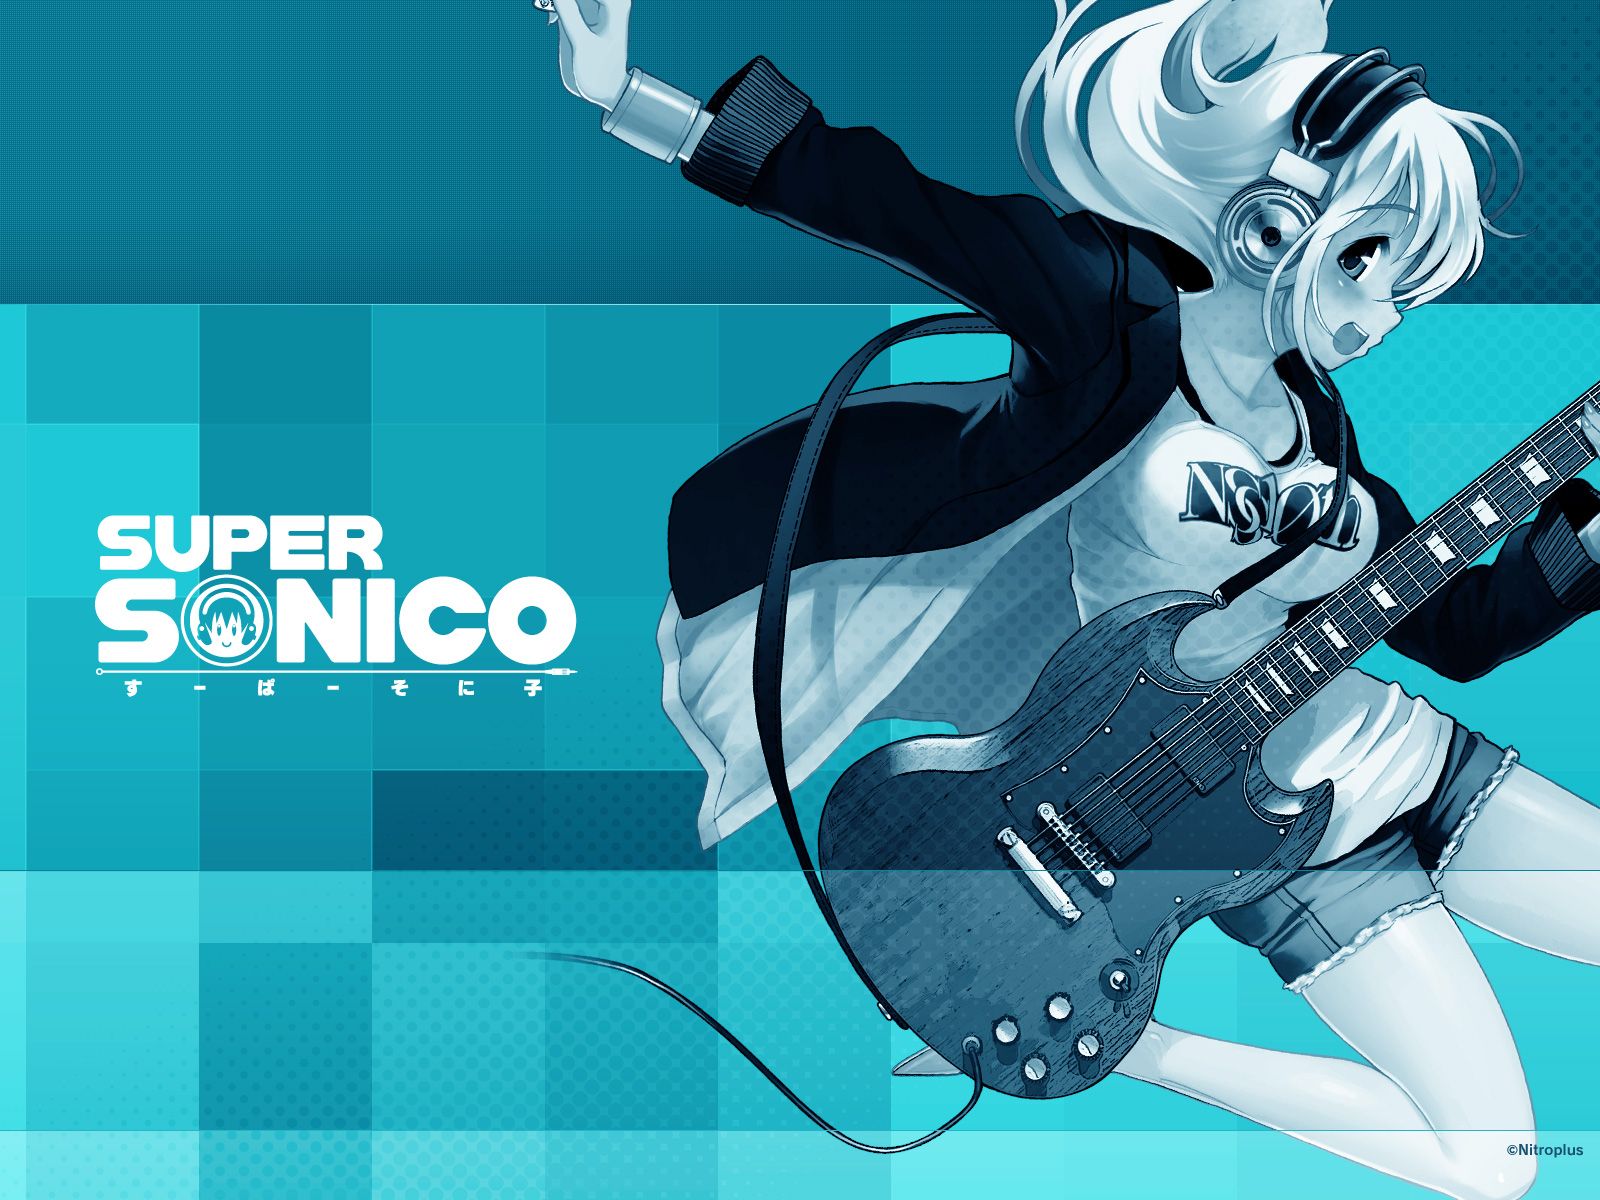 blue guitar headphones instrument jpeg_artifacts nitroplus polychromatic sonico super_sonico